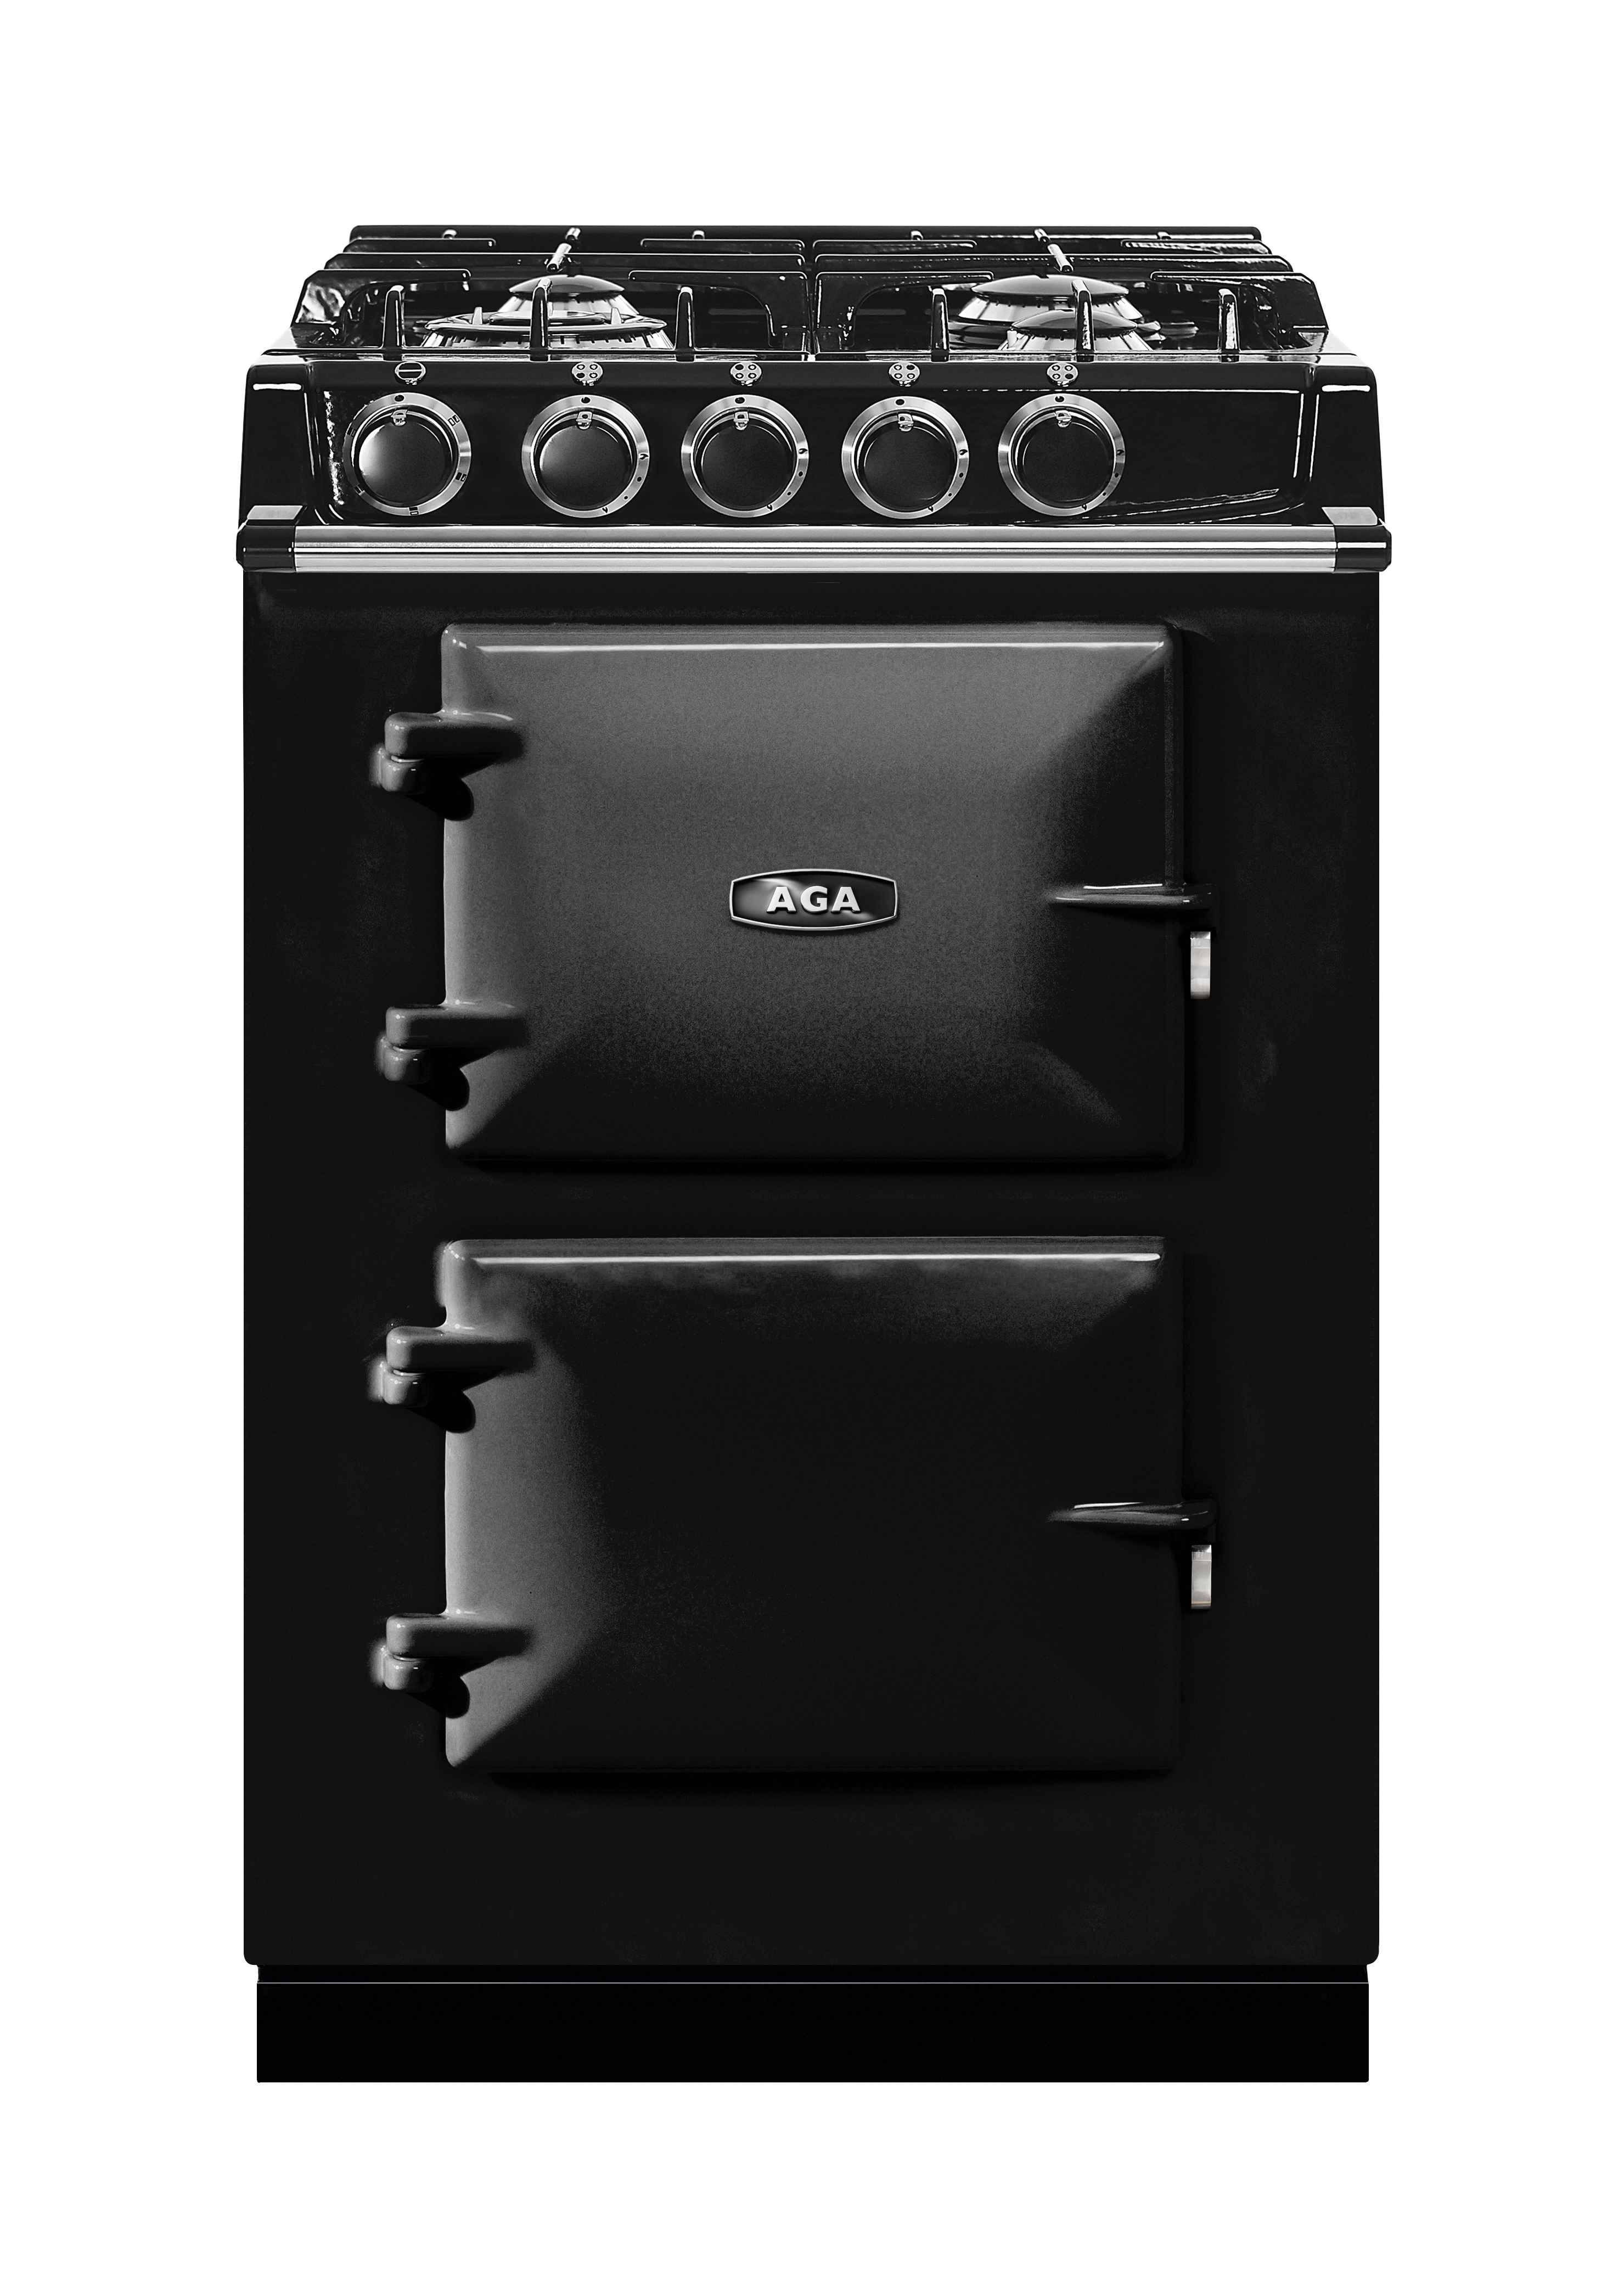 AGA 60 Cooker - Ideal For Smaller Kitchens